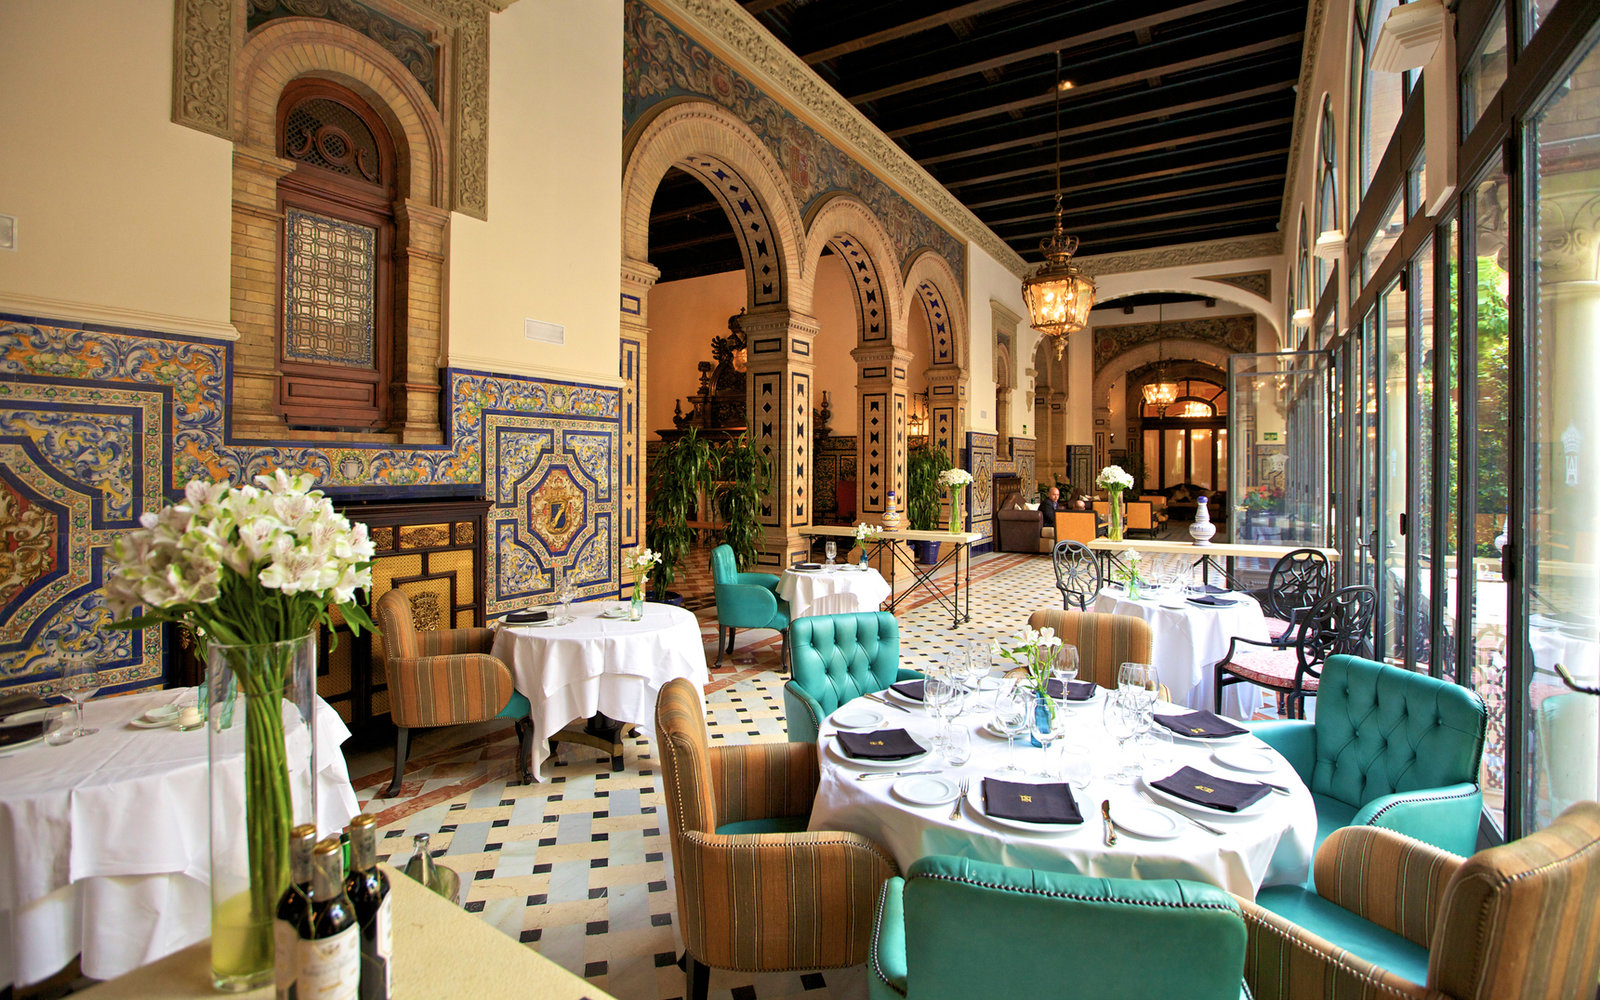 Hotel Alfonso Xlll, Seville, Andalusia, Spain